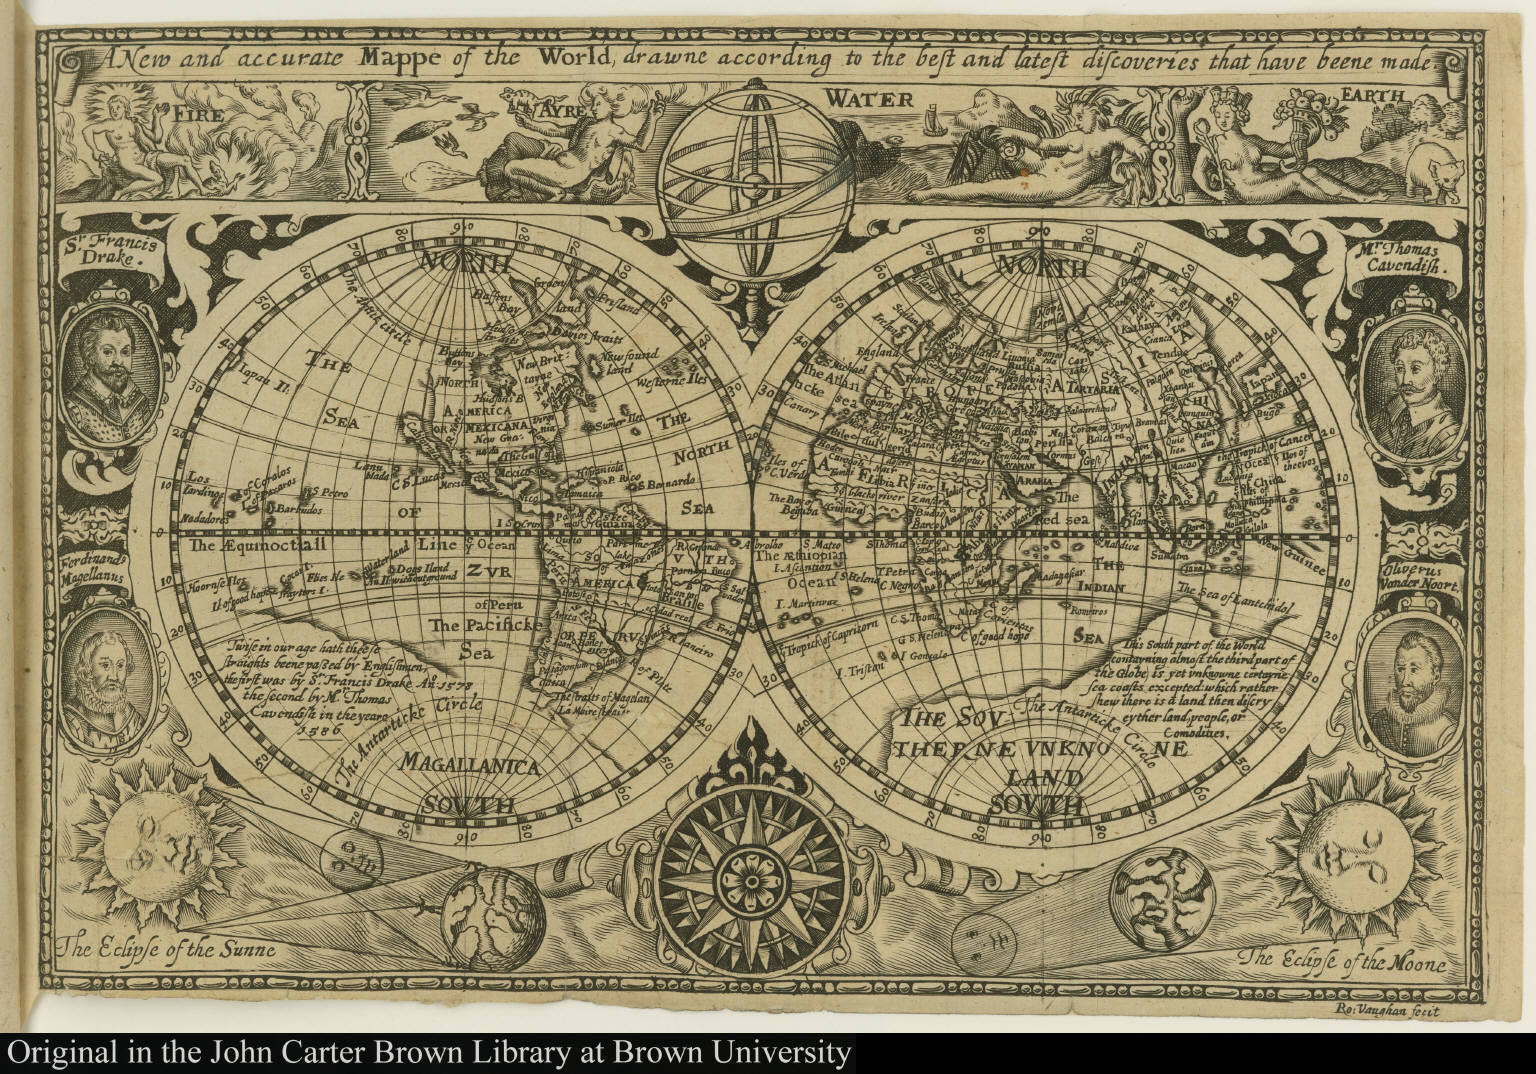 A New and accurate Mappe of the World, drawne according to the best and latest discoveries that have been made.